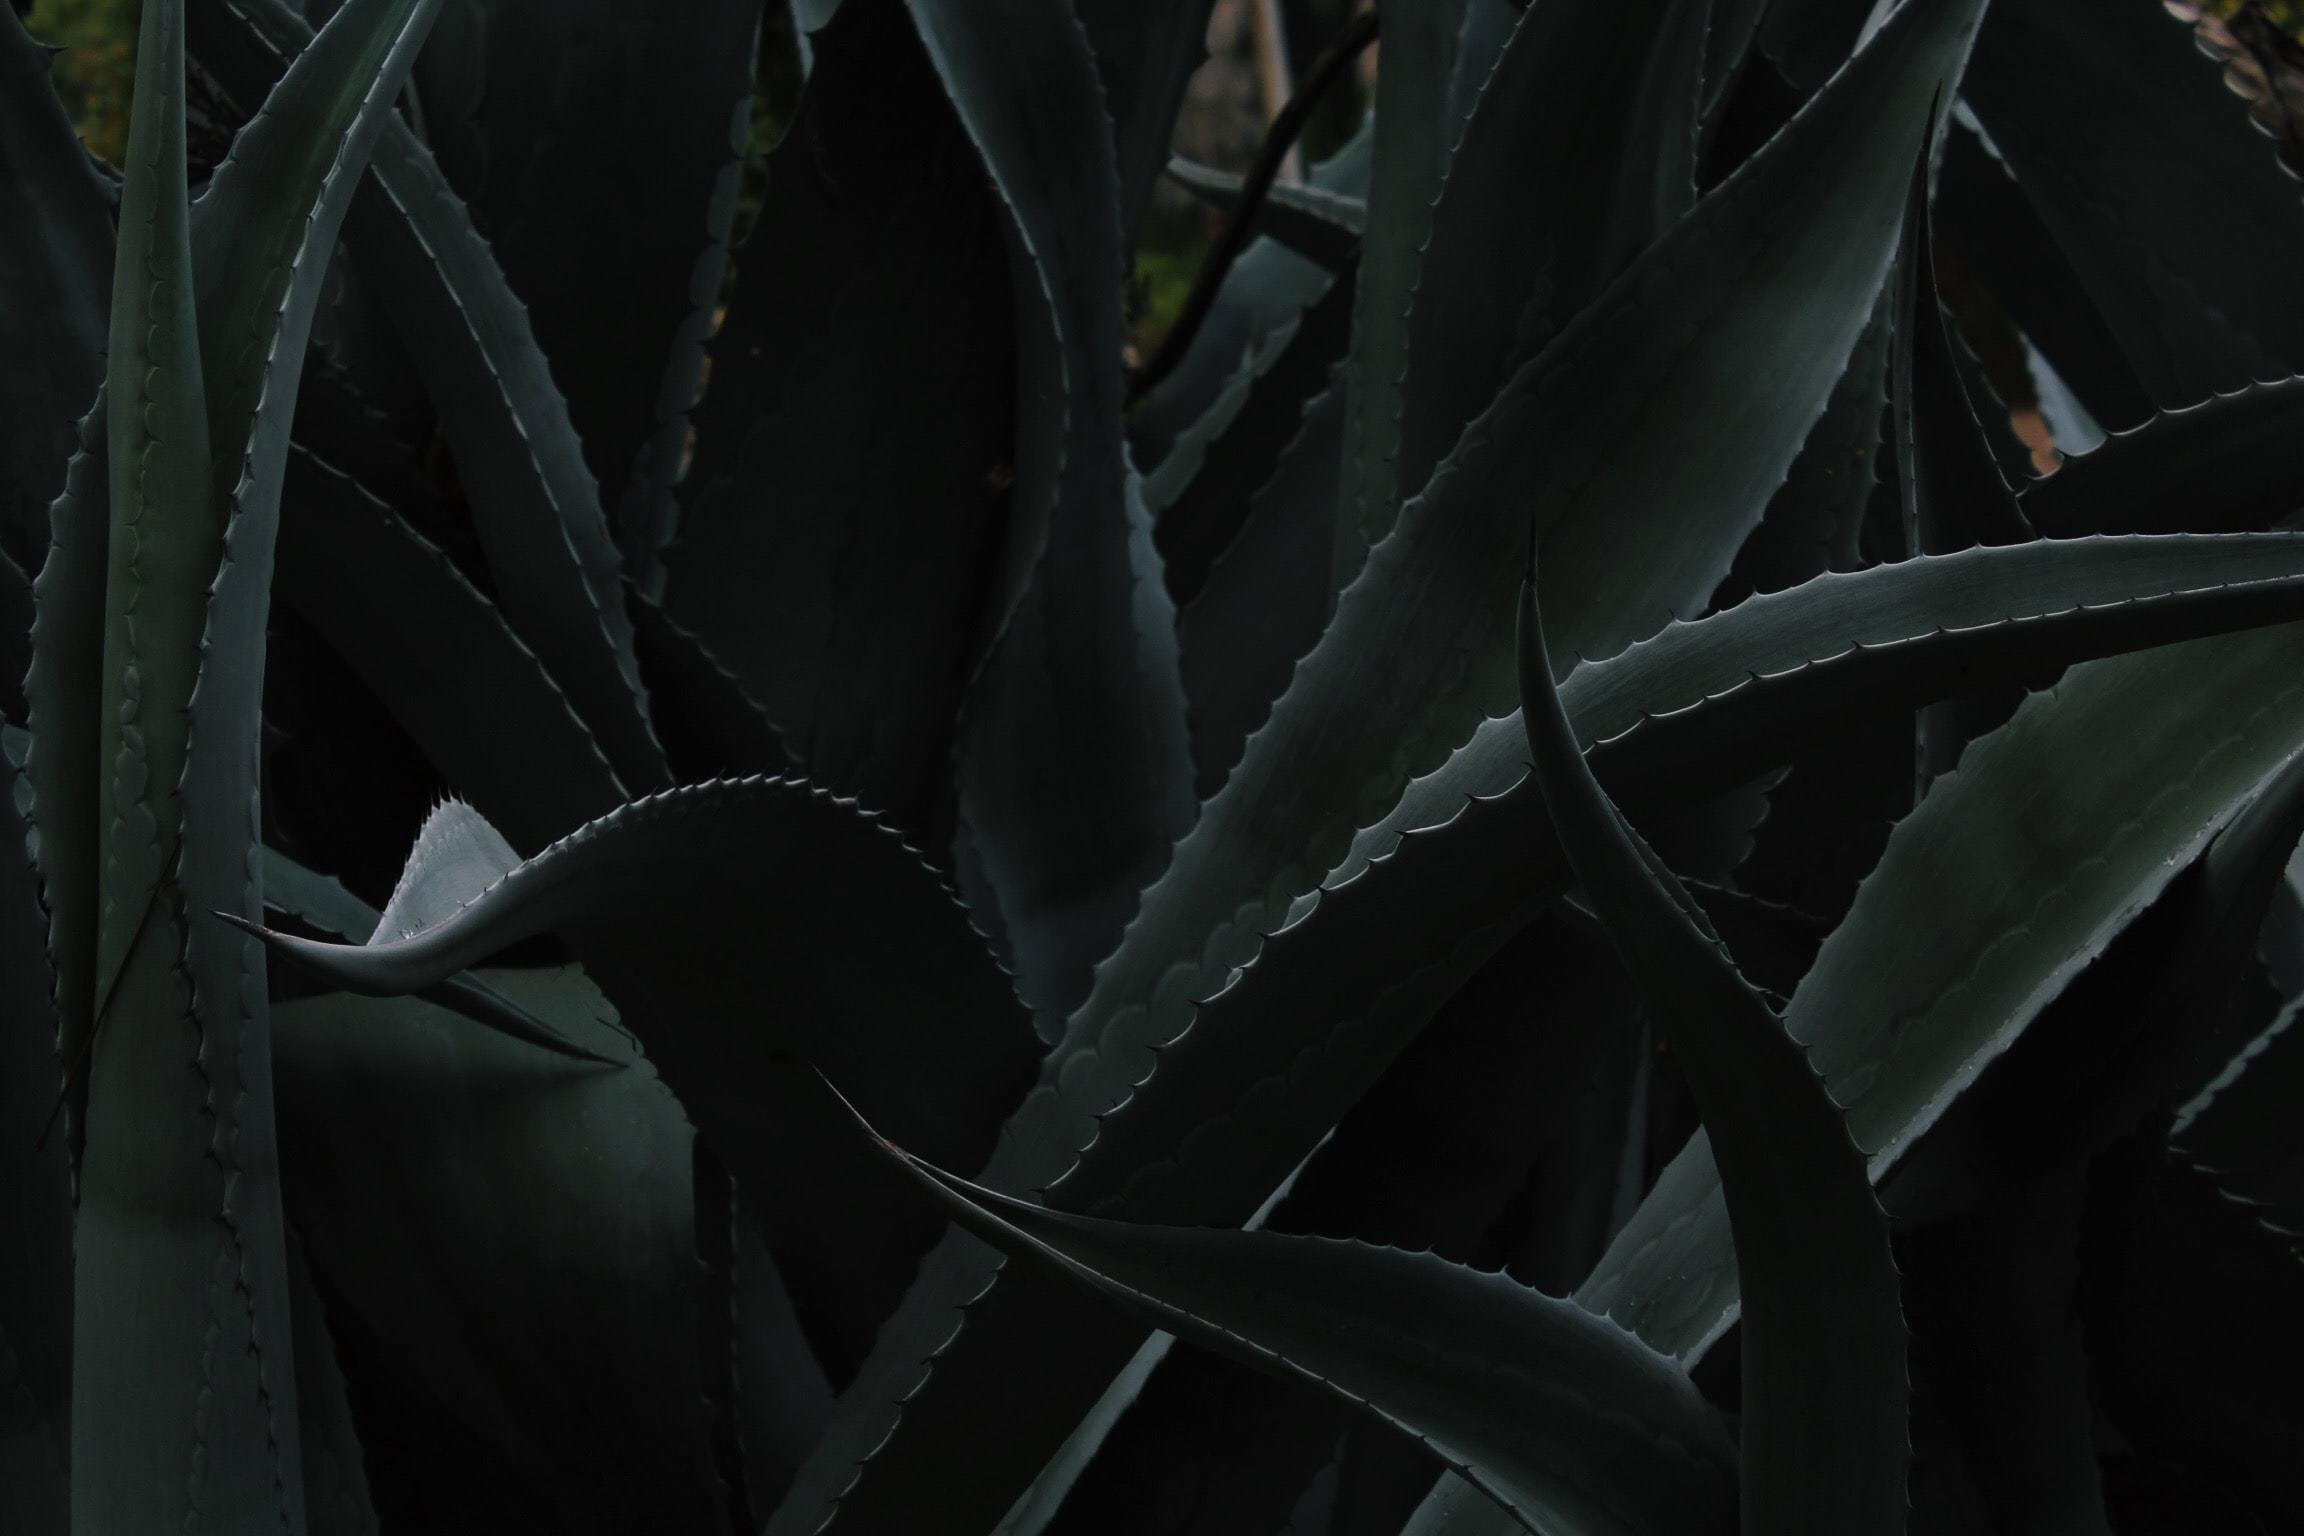 closeup photo of Aloe vera plant